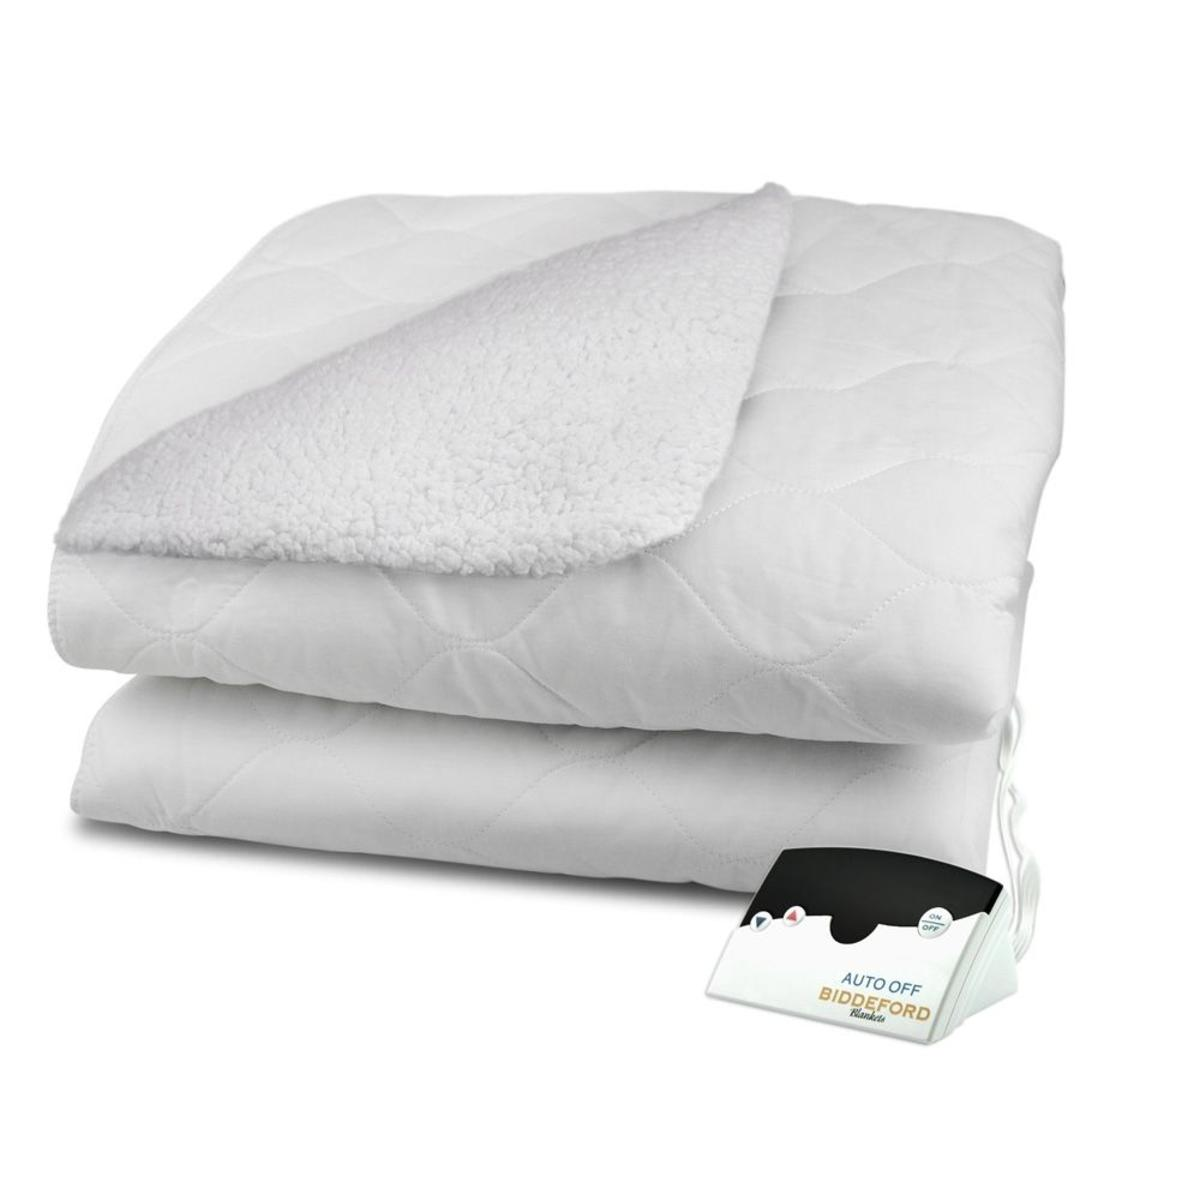 Biddeford Blankets Sherpa Quilted Electric Heated Mattress Pad With Digital Controller Twin The Warming Store